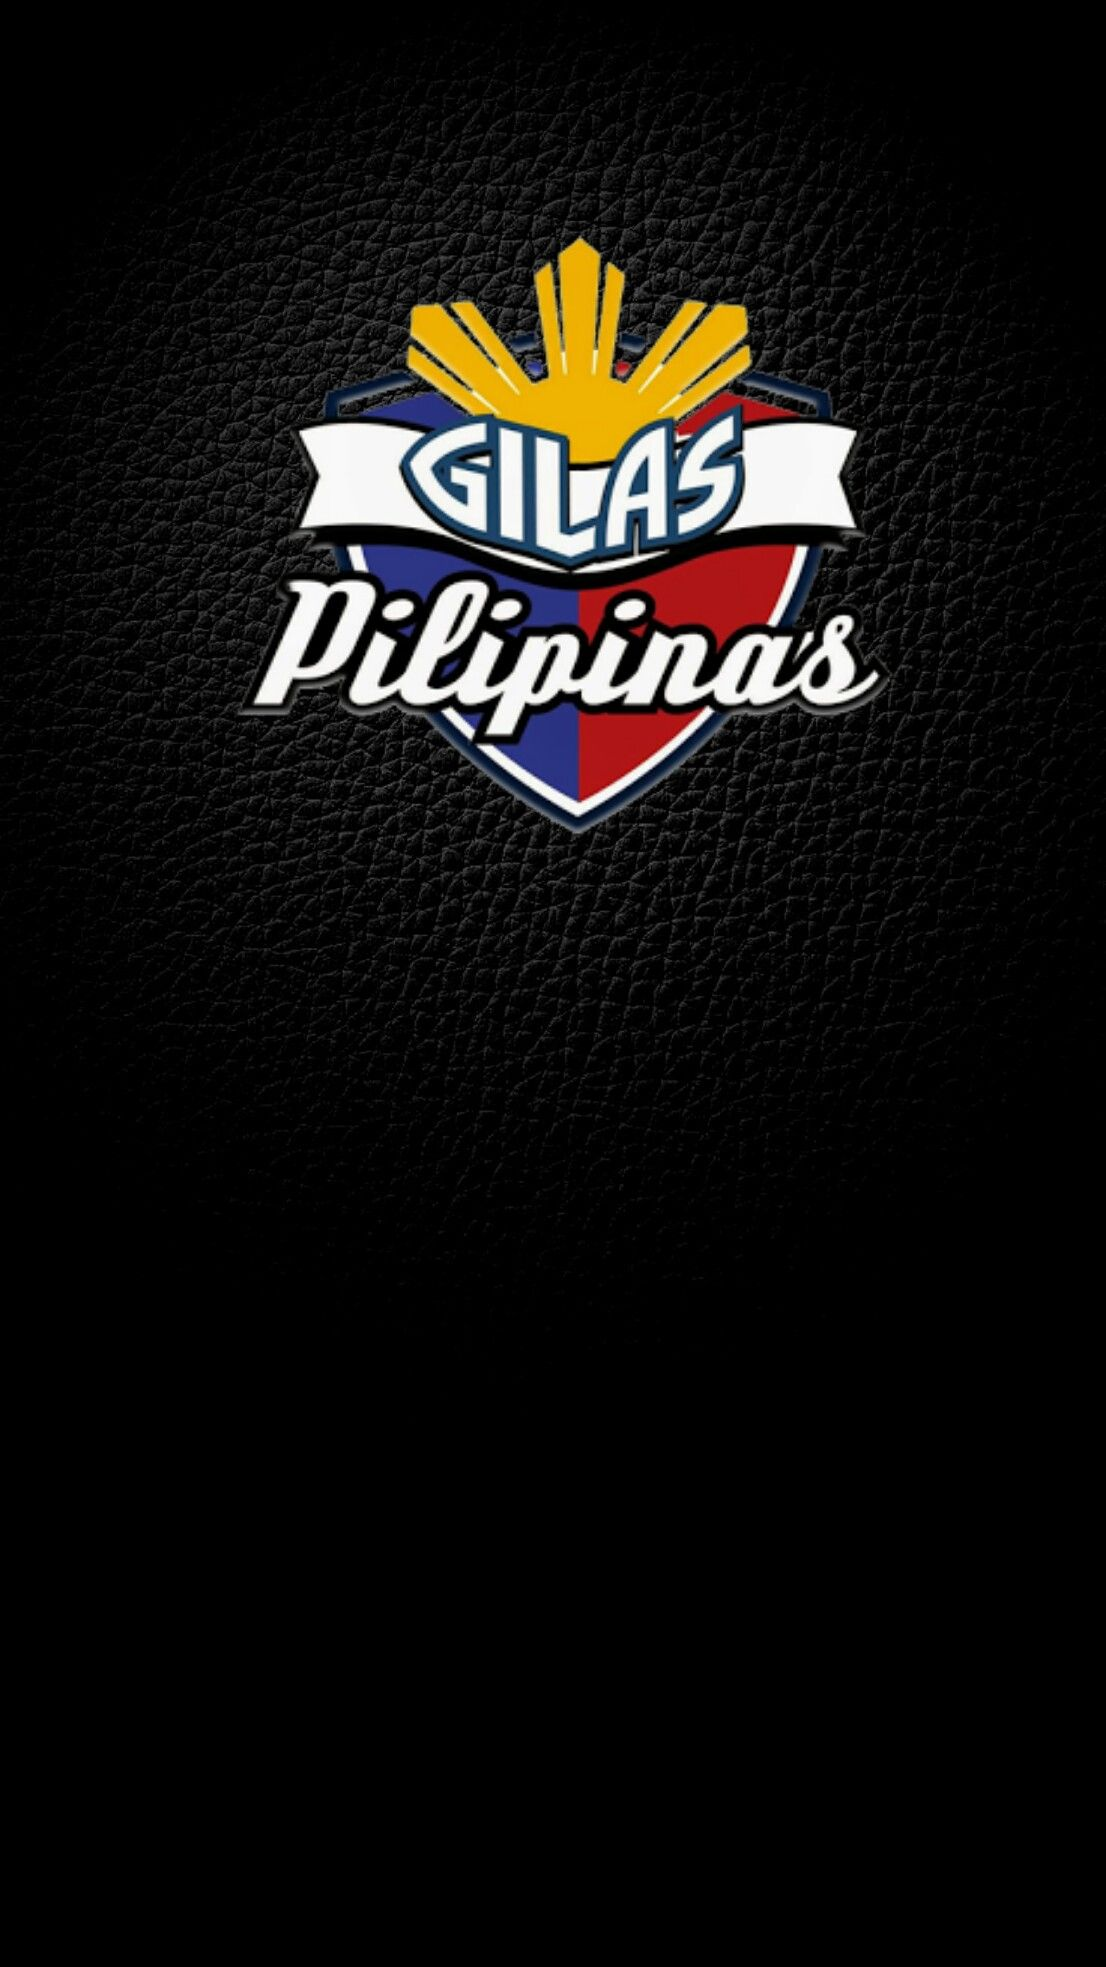 Pilipinas Alab Gilas Pba Wallpaper Android Iphone Sport